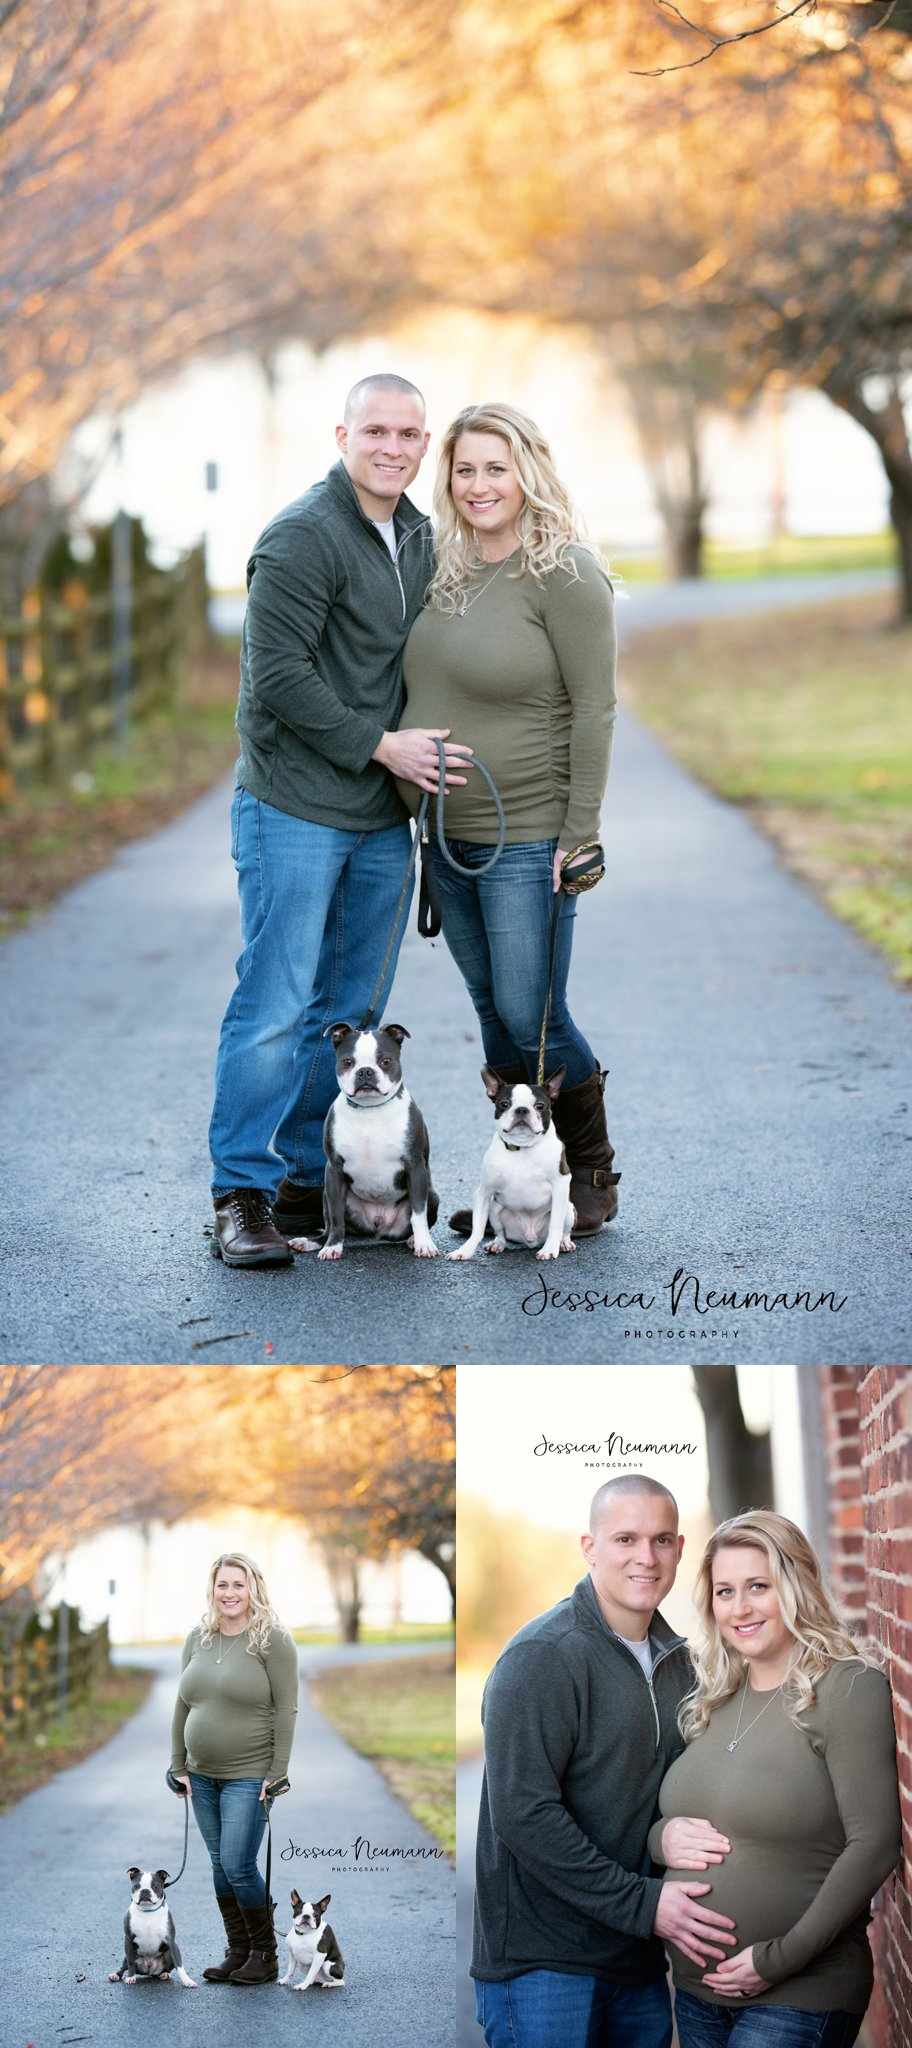 Maternity photos of couple with dogs in New Market, MD